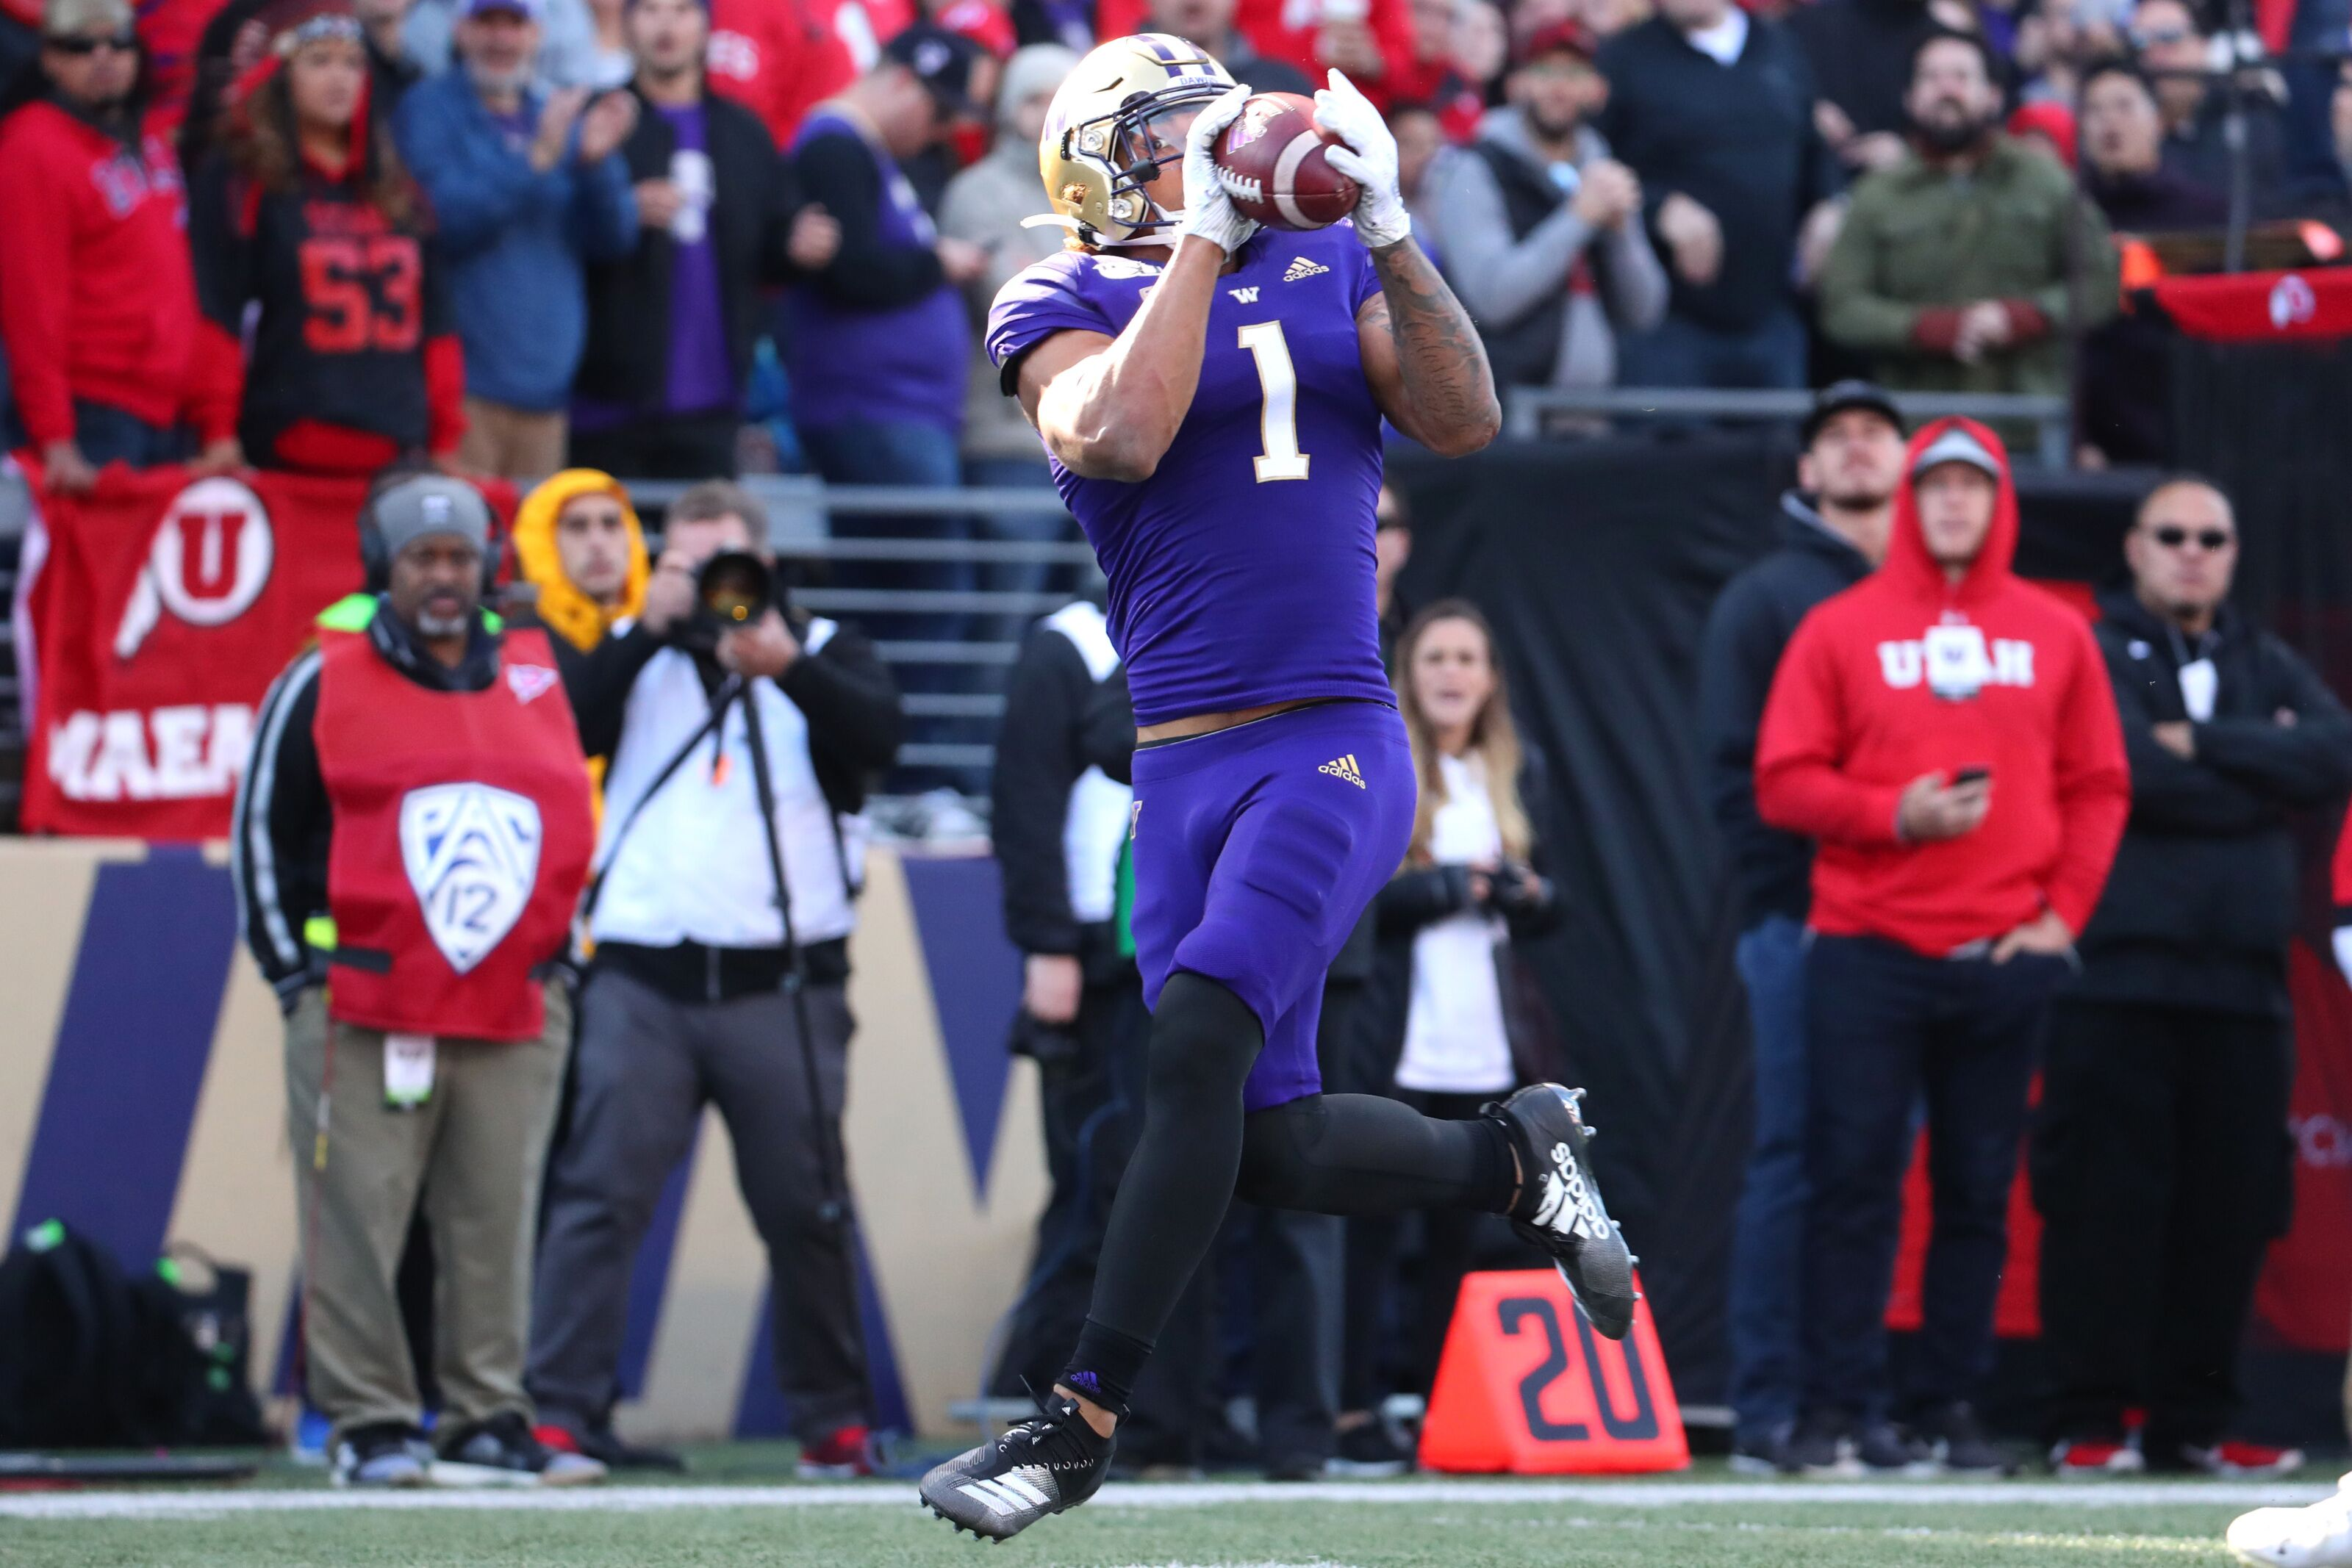 Where will Washington football's Hunter Bryant get drafted?